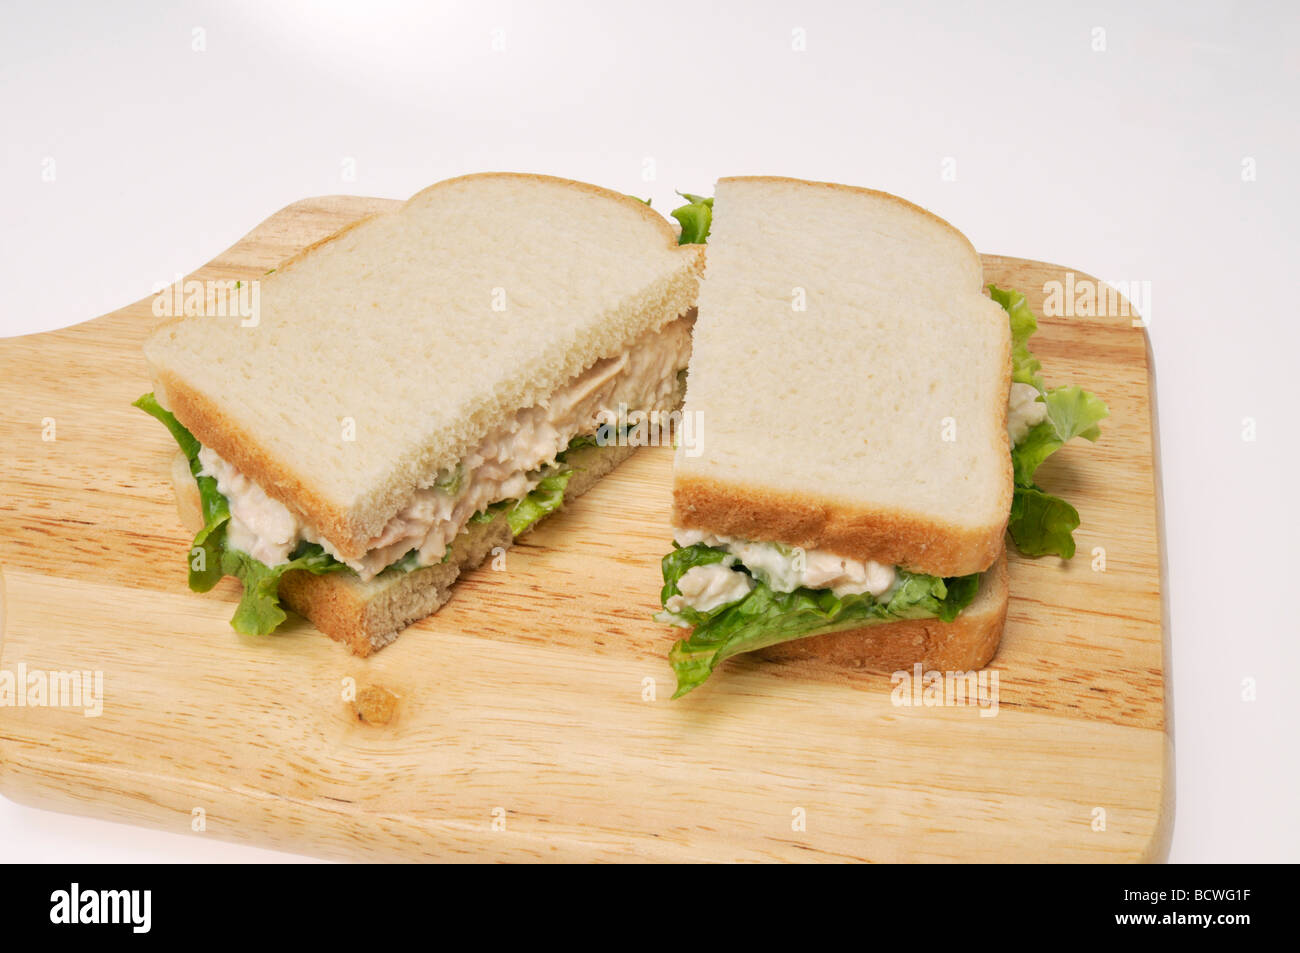 Tuna mayo sandwich on white bread with lettuce on  wood cutting board with white background. - Stock Image